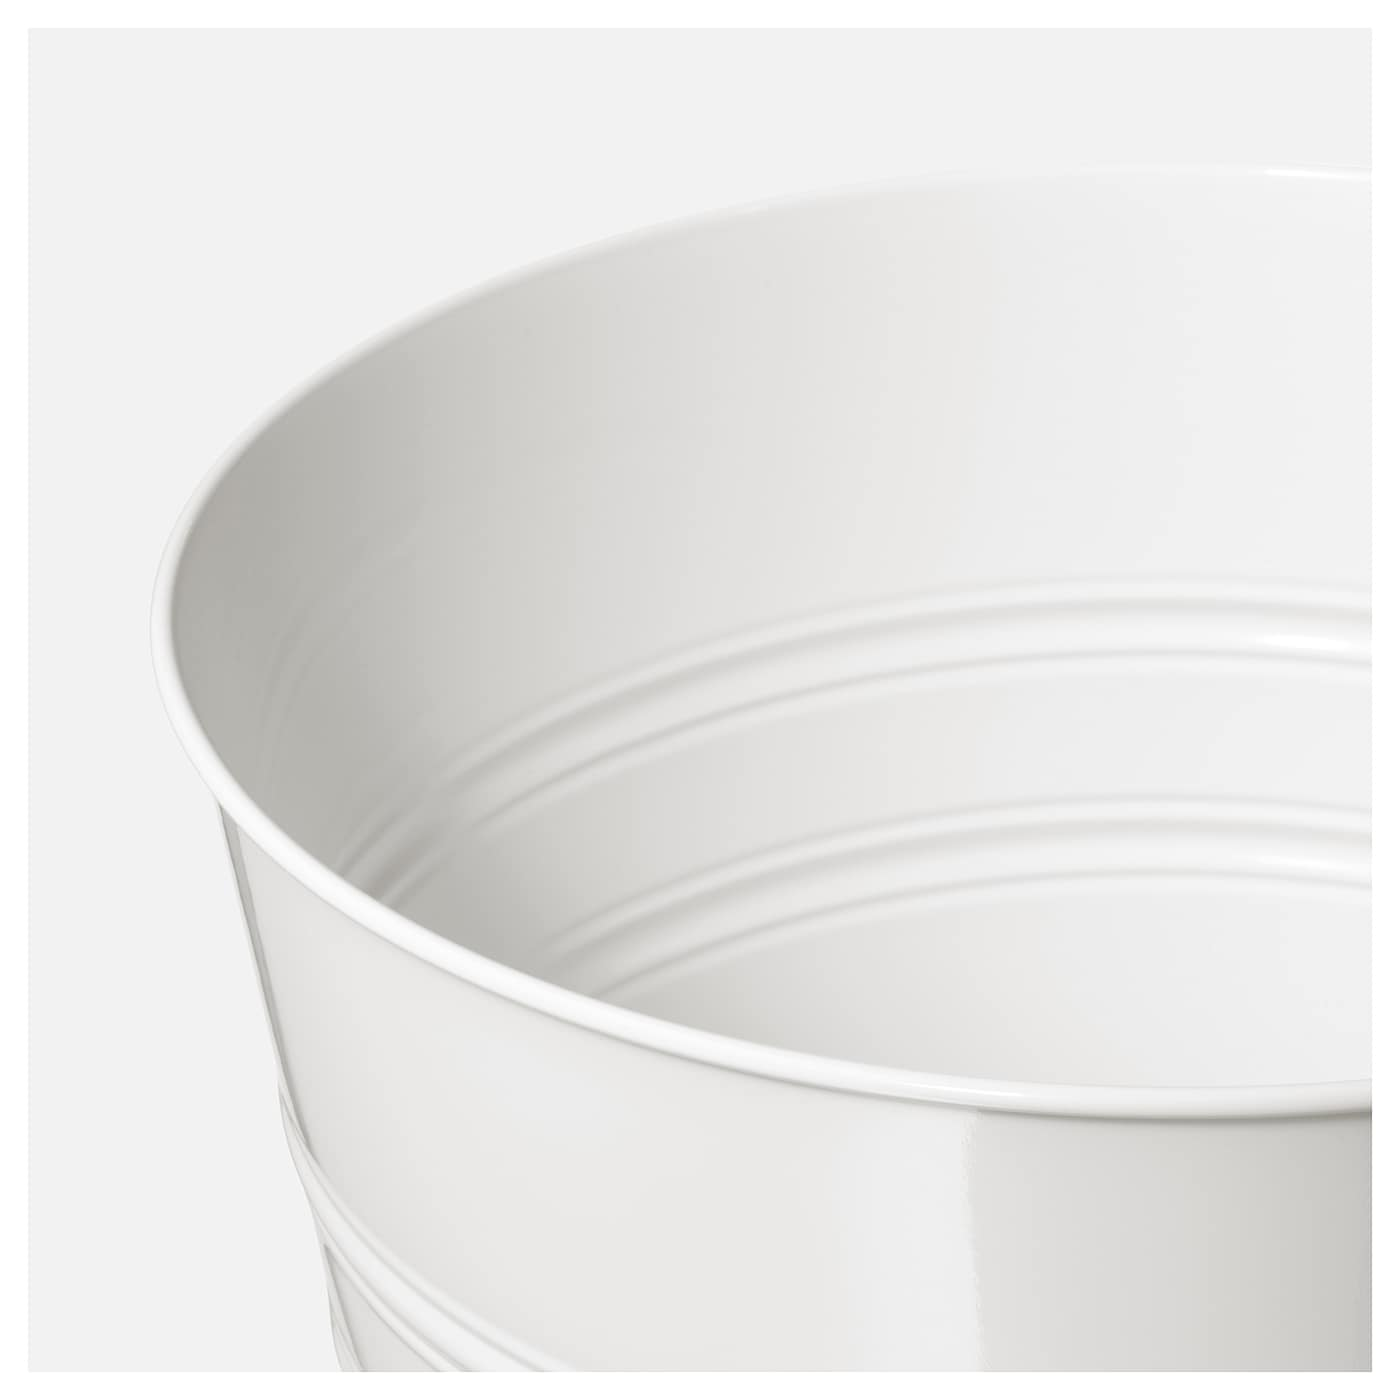 Socker cache pot int rieur ext rieur blanc 24 cm ikea for Cache pot interieur